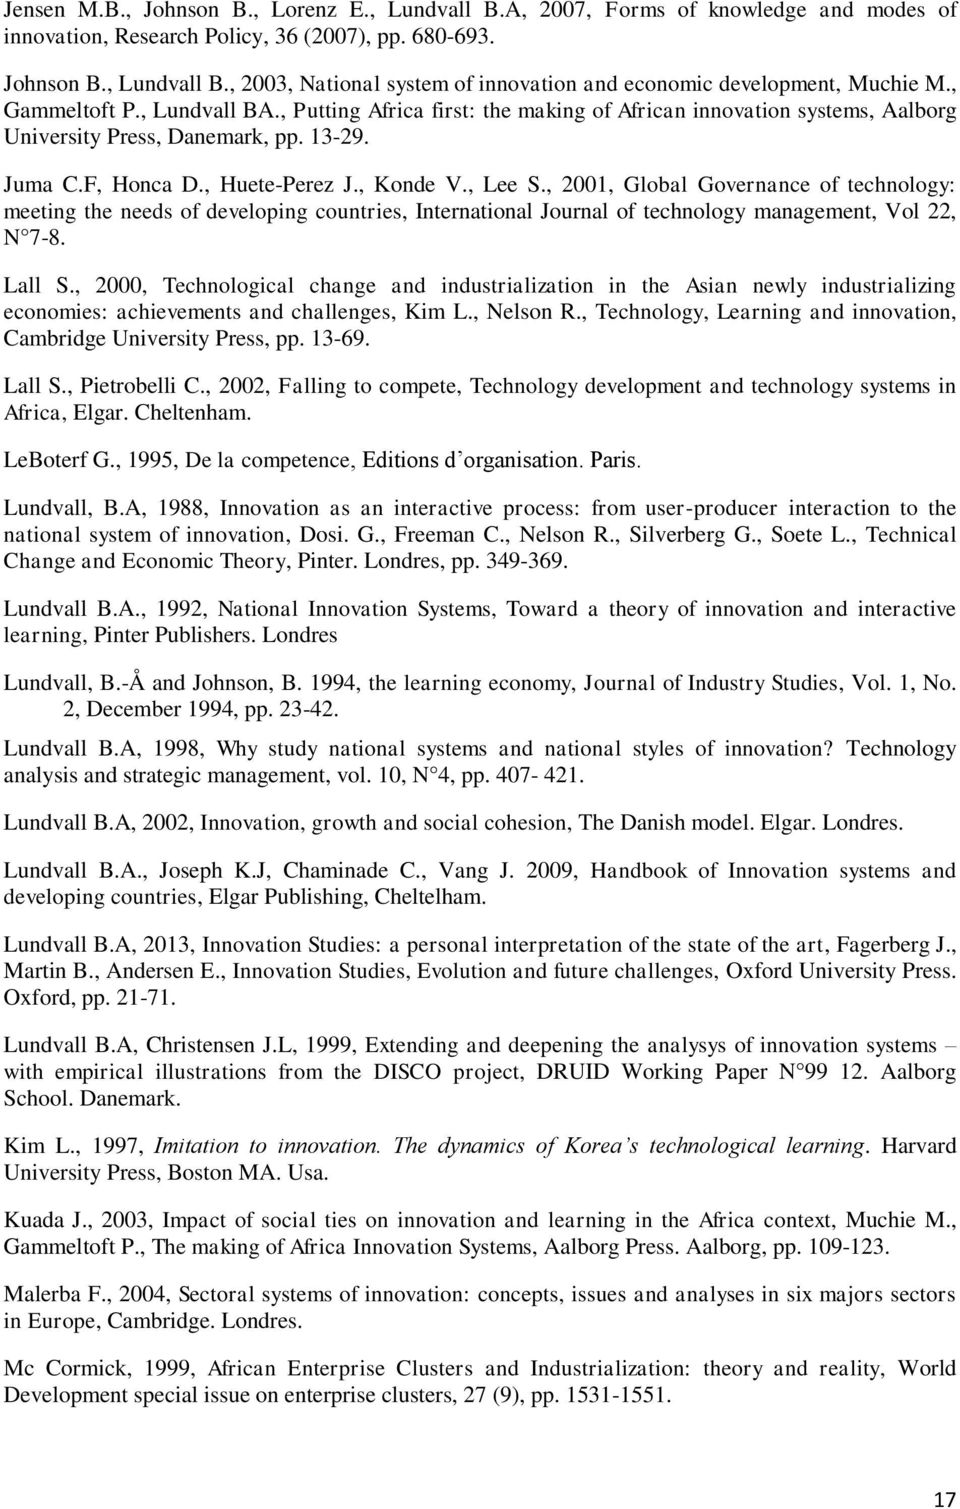 , 2001, Global Governance of technology: meeting the needs of developing countries, International Journal of technology management, Vol 22, N 7-8. Lall S.